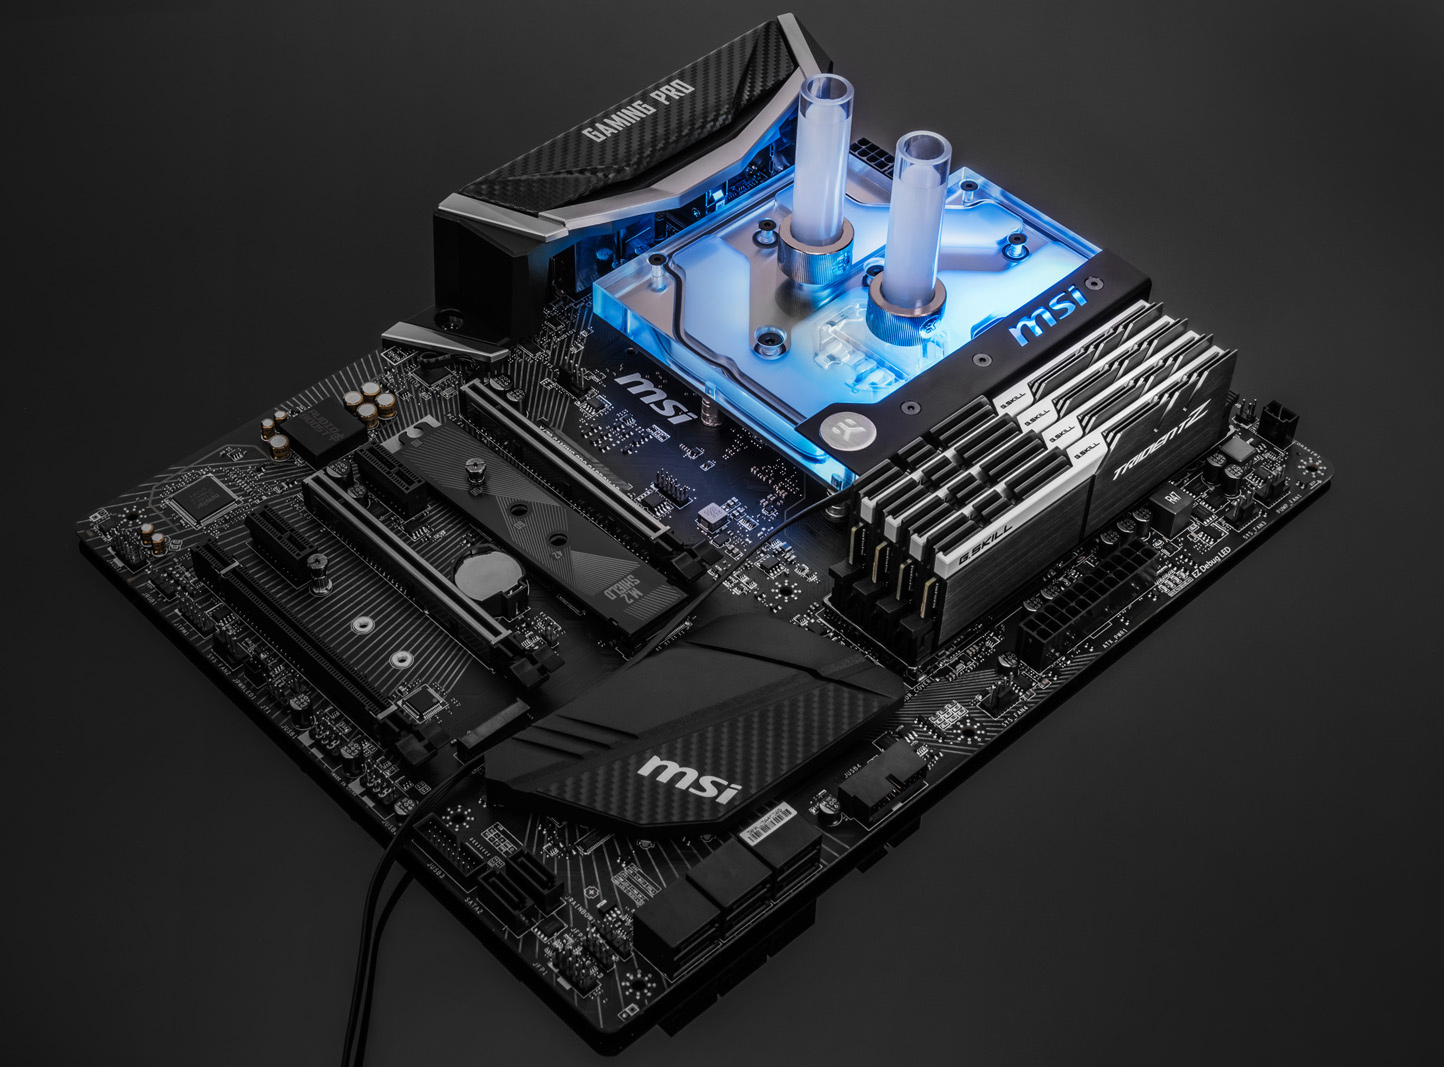 EK® is releasing a new AM4 monoblock for the MSI® X470